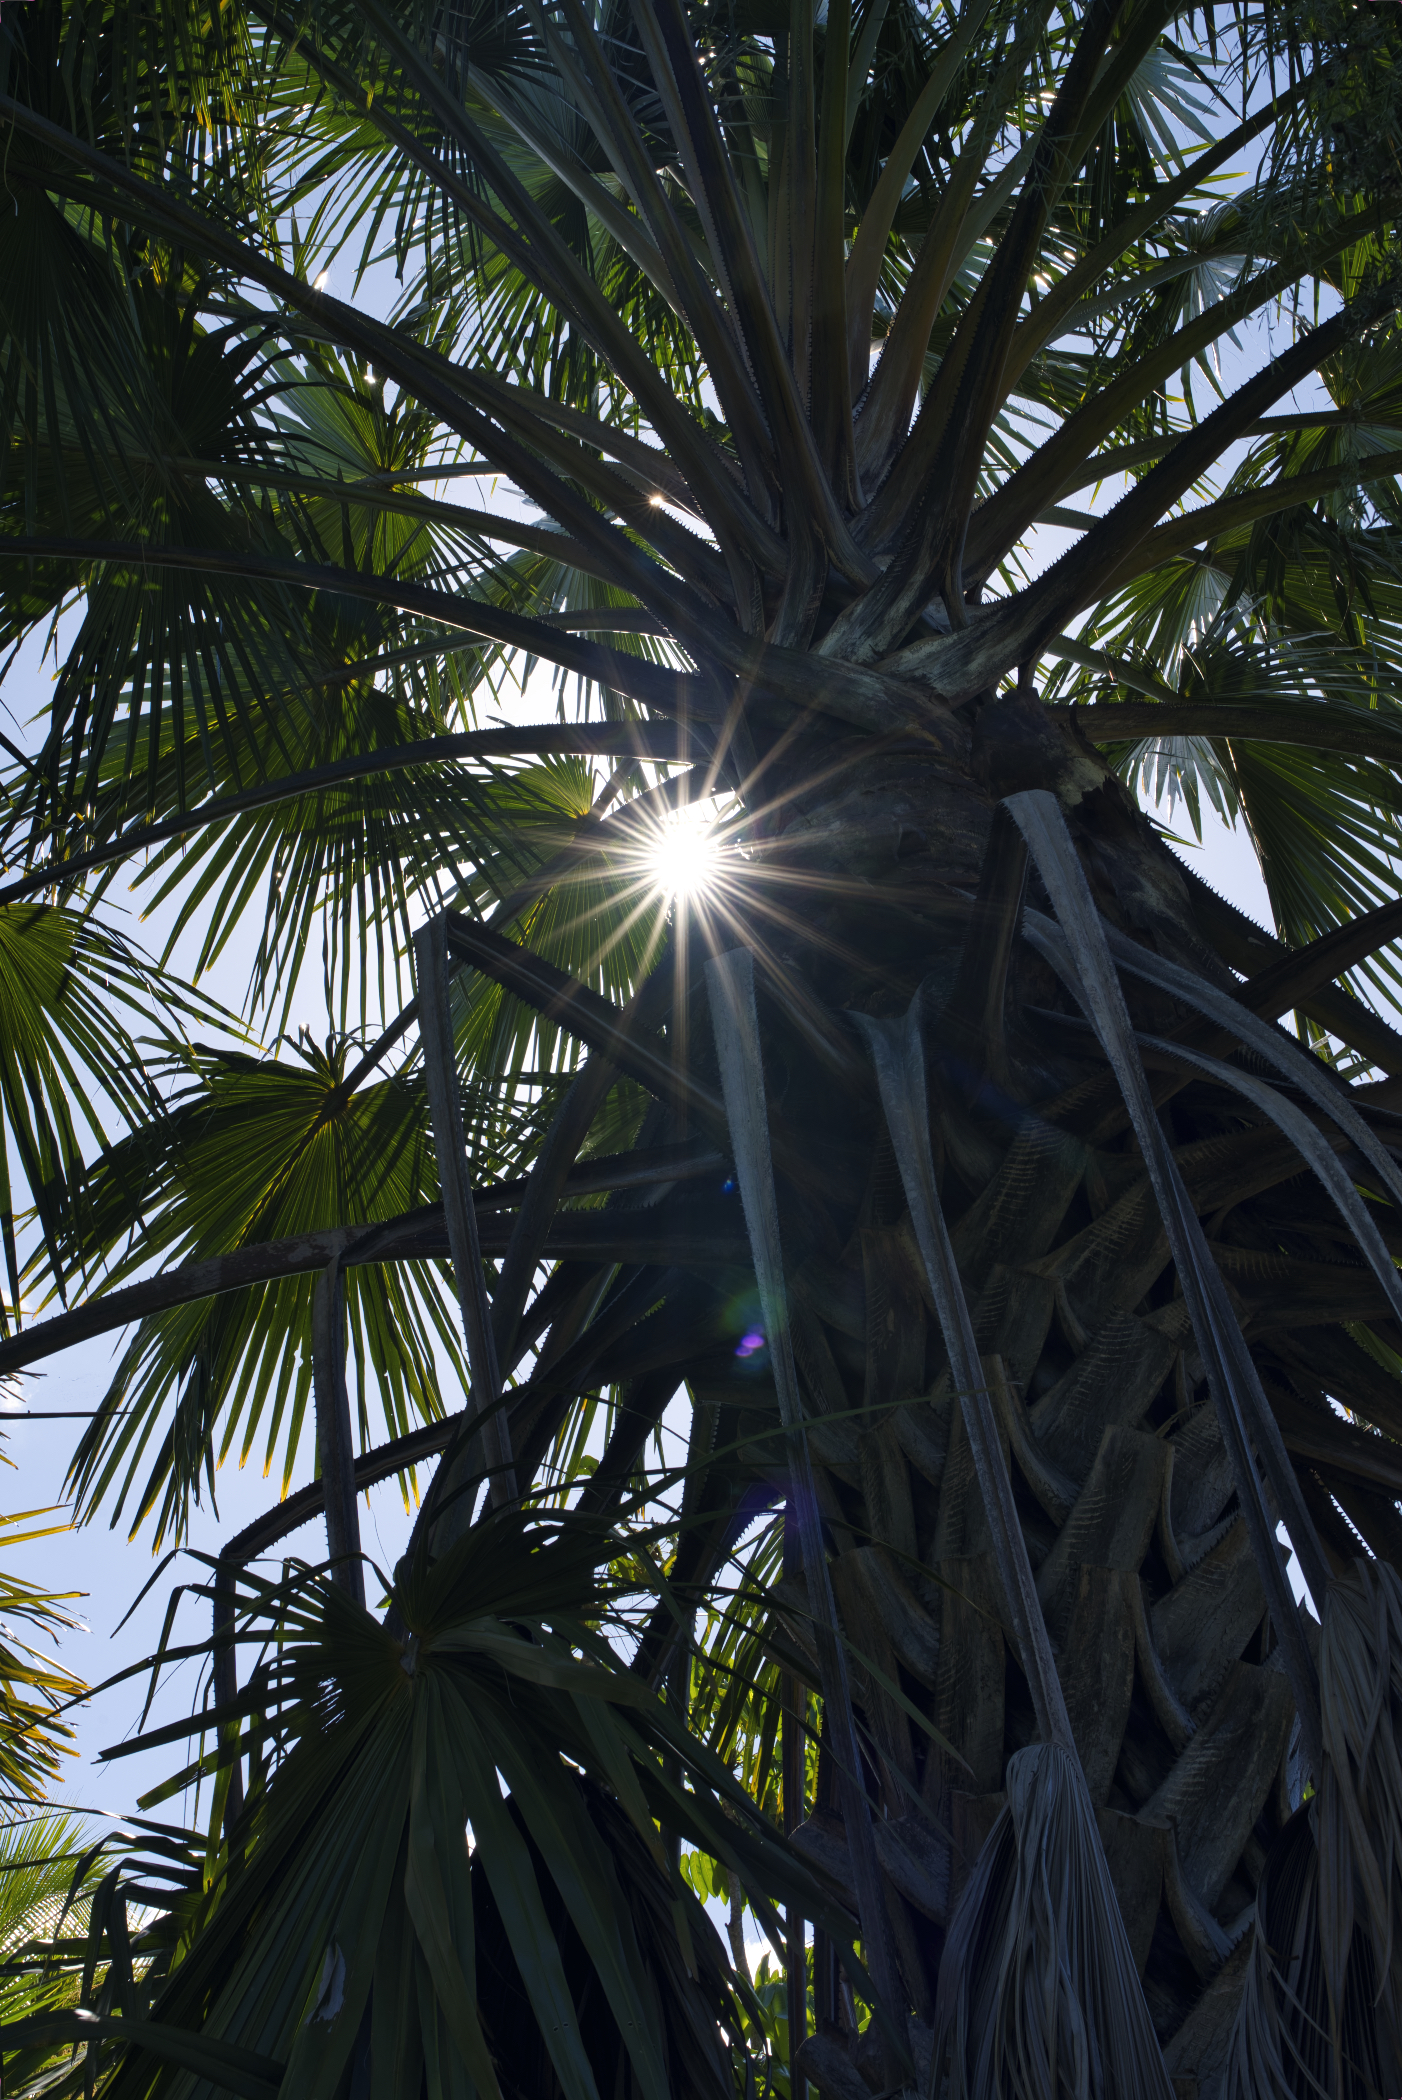 There is an abundance of palms that offer a little shade during the day.